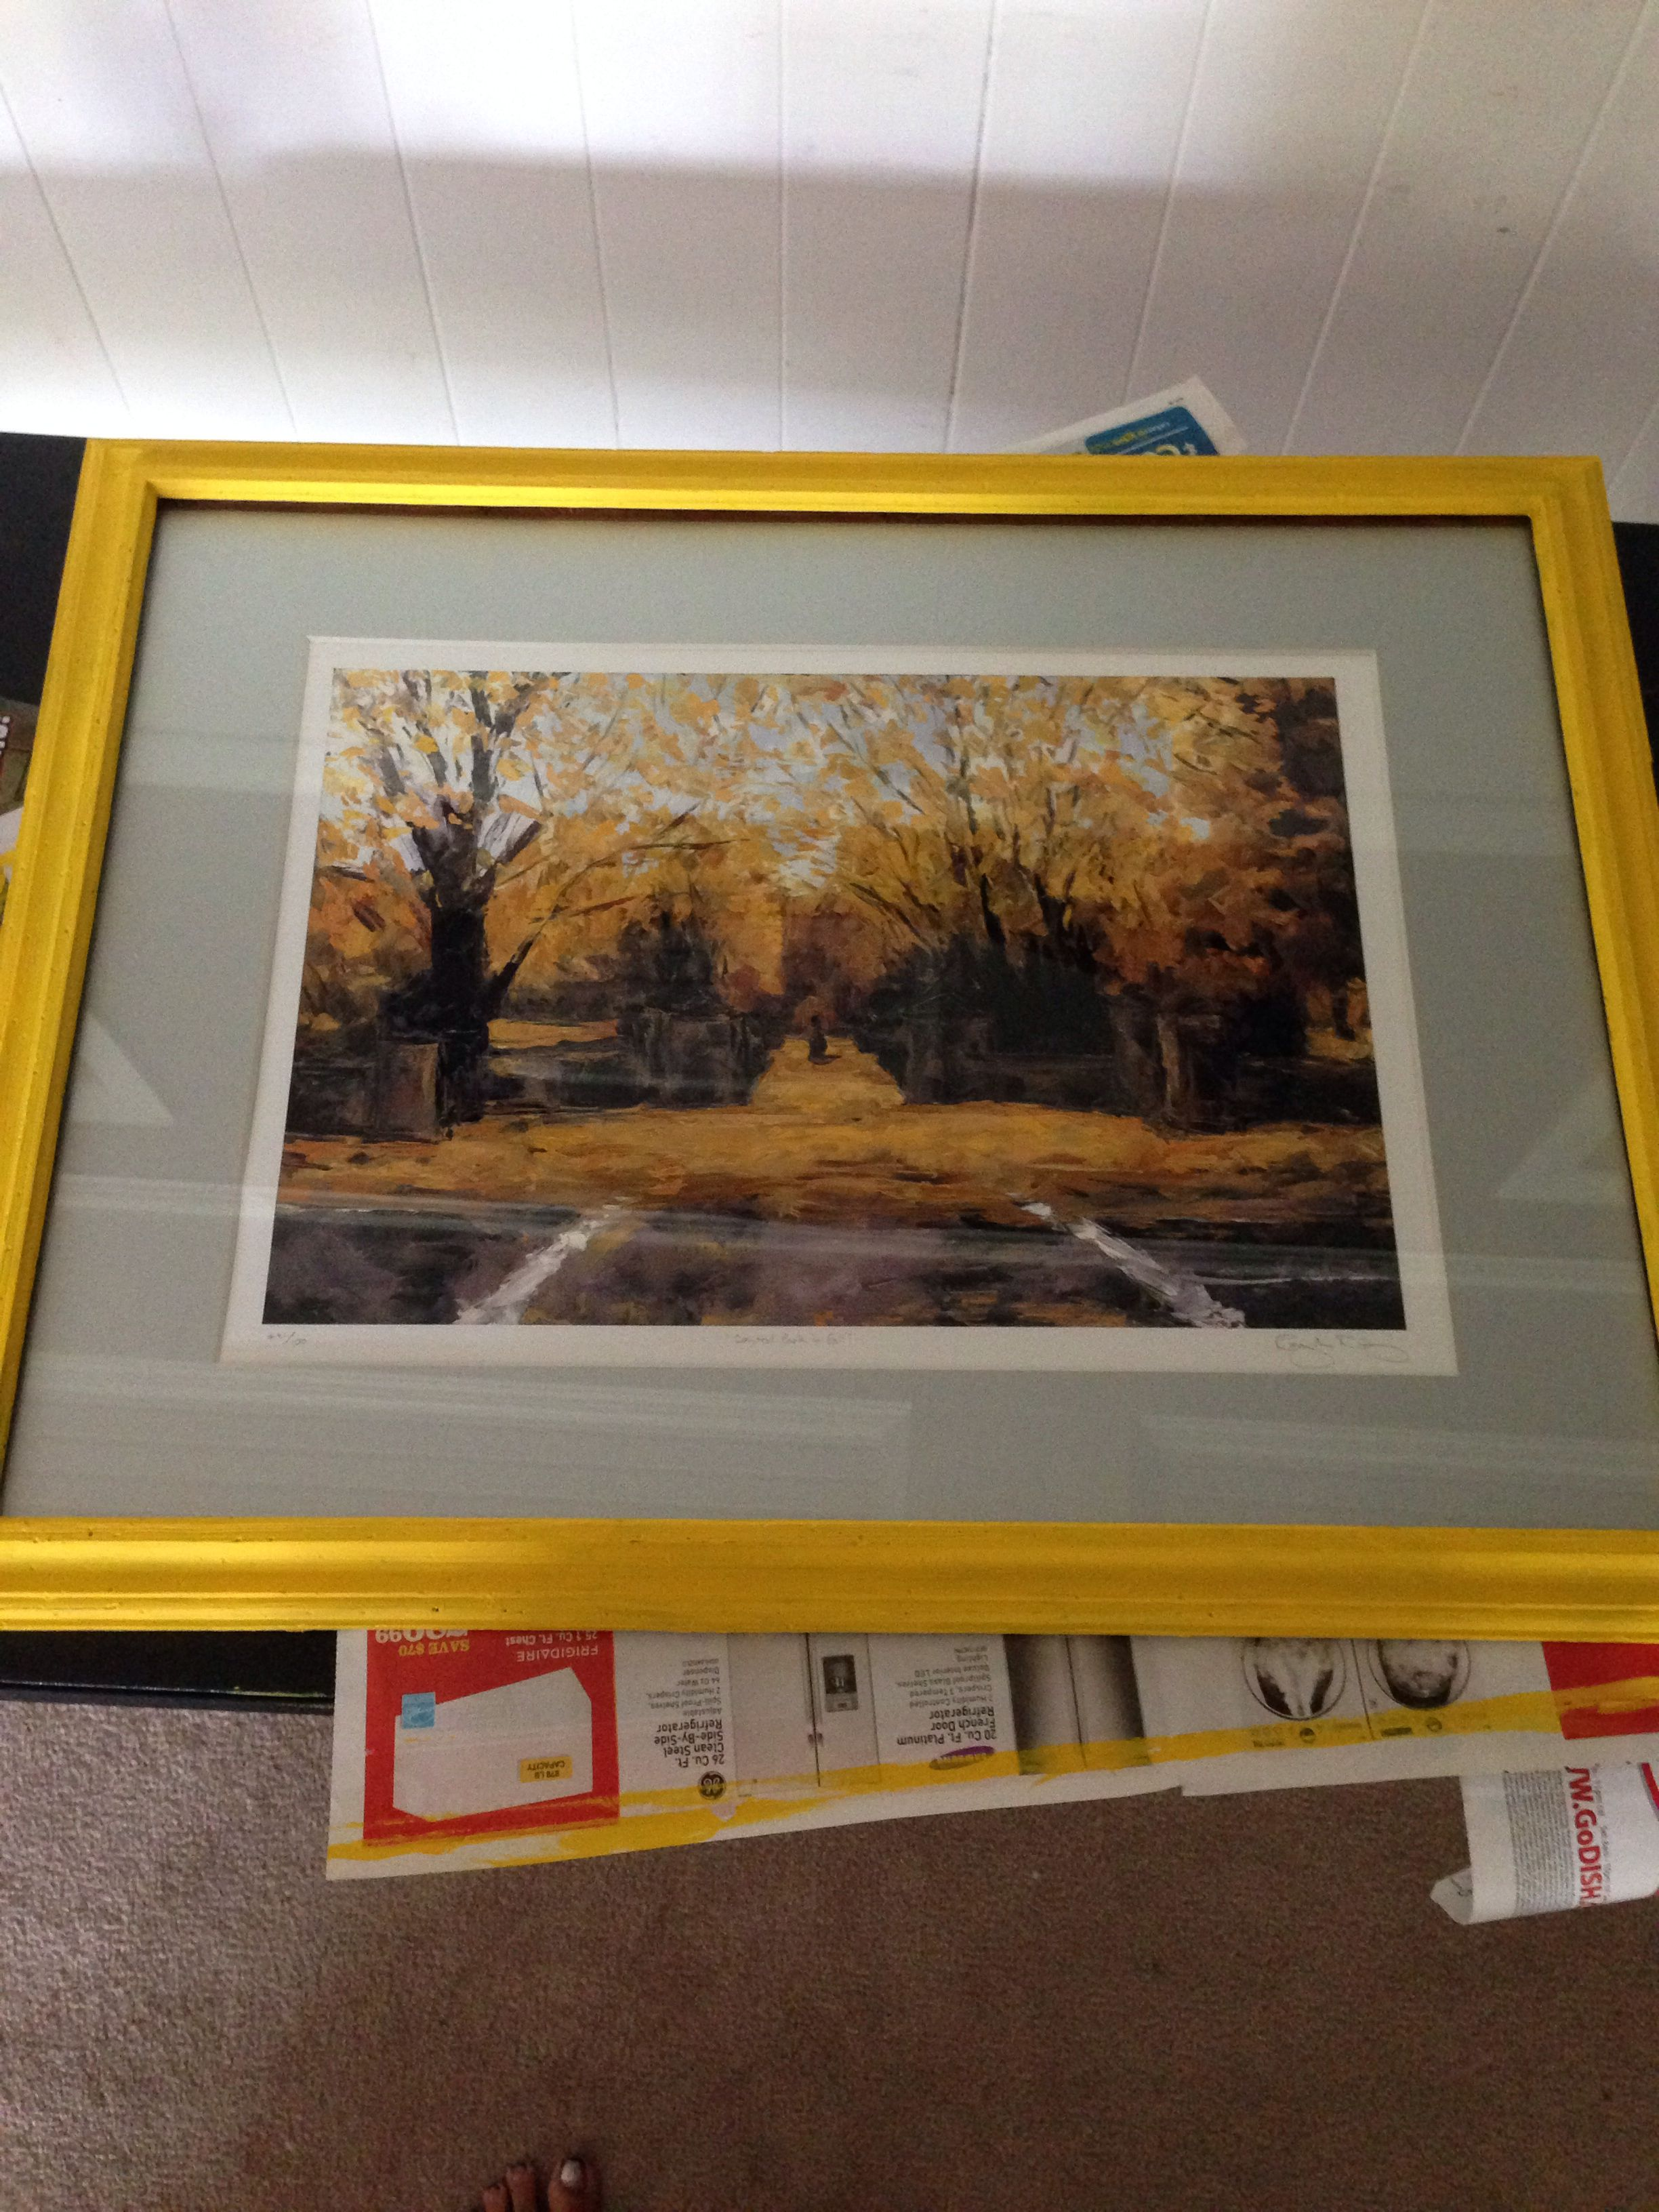 Refurbished picture frame, I got an old wooden frame from a resale ...